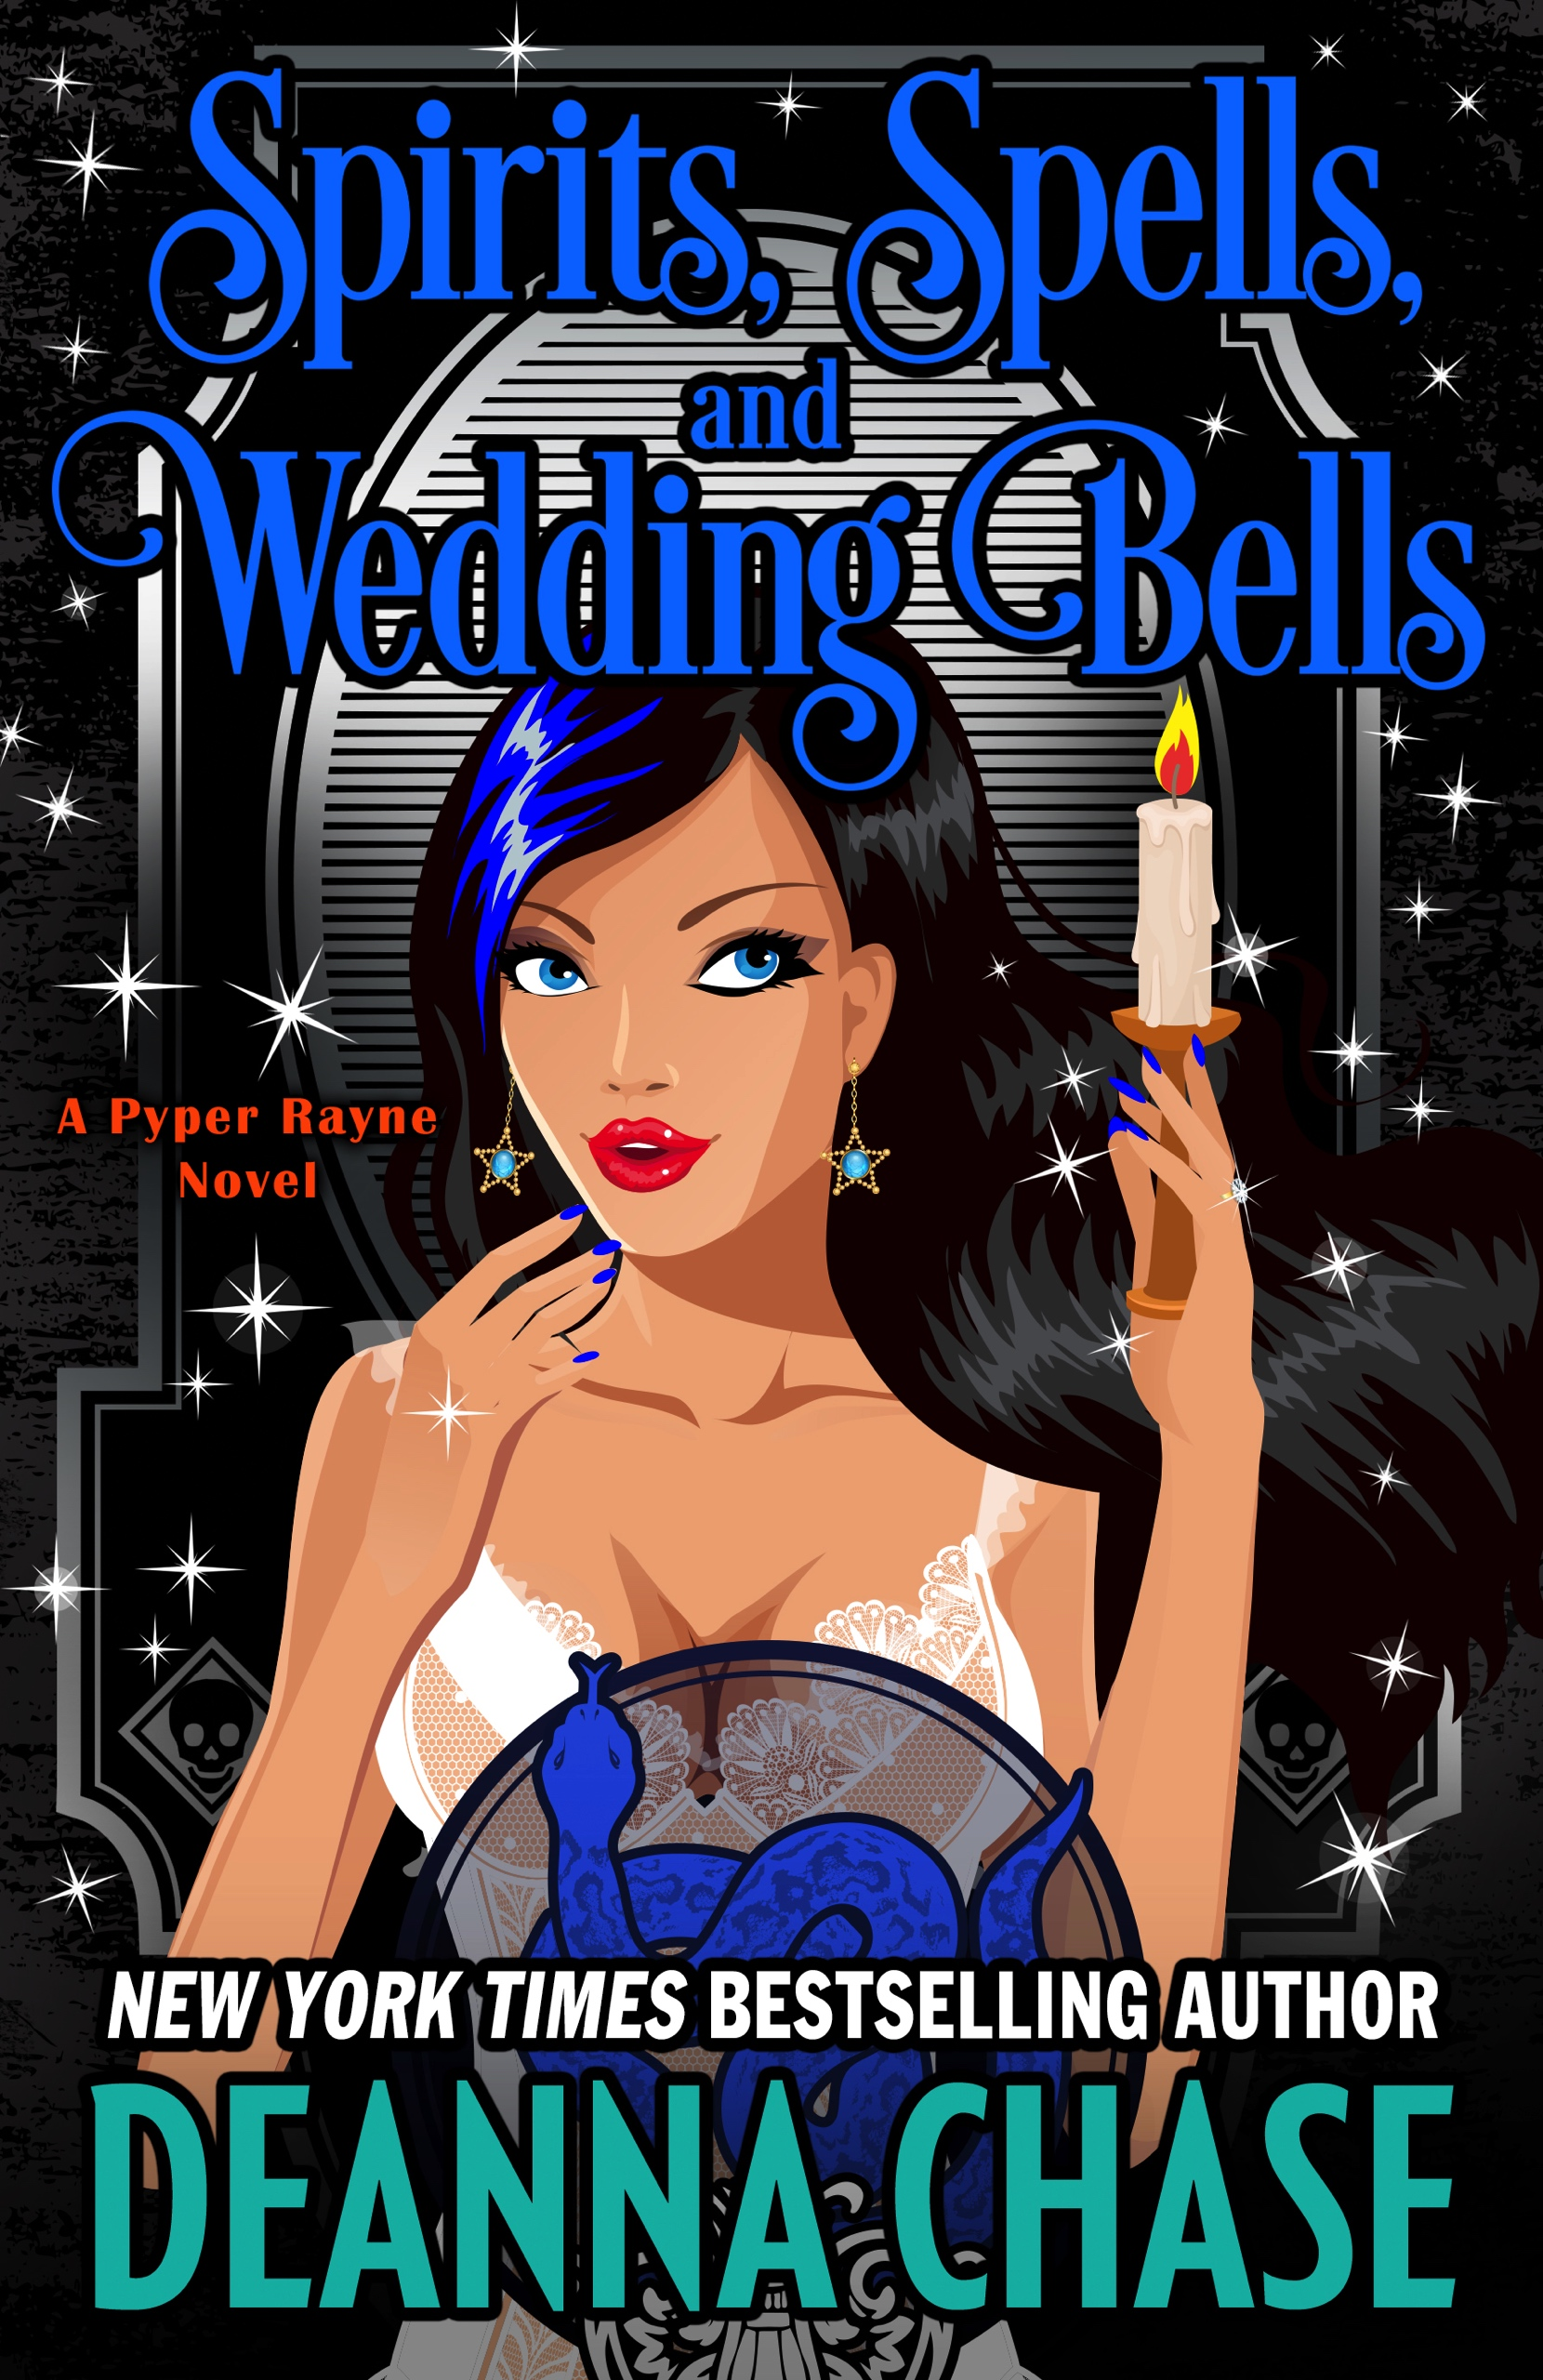 Spirits, Spells, and Wedding Bells